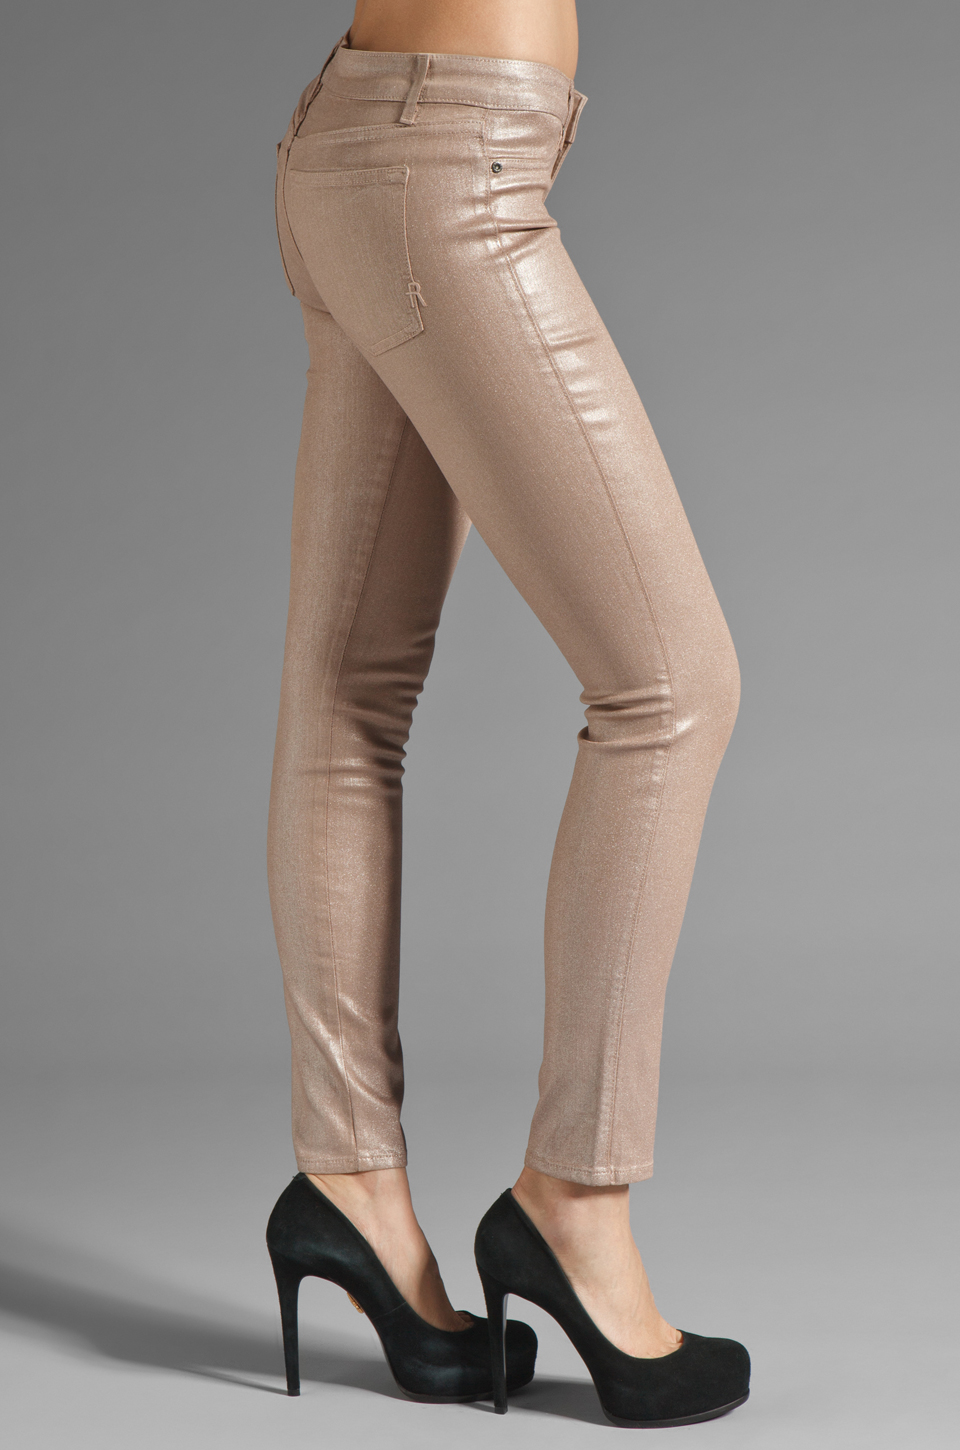 Rich & Skinny Legacy Sparkle Metallic Skinny in Barbie